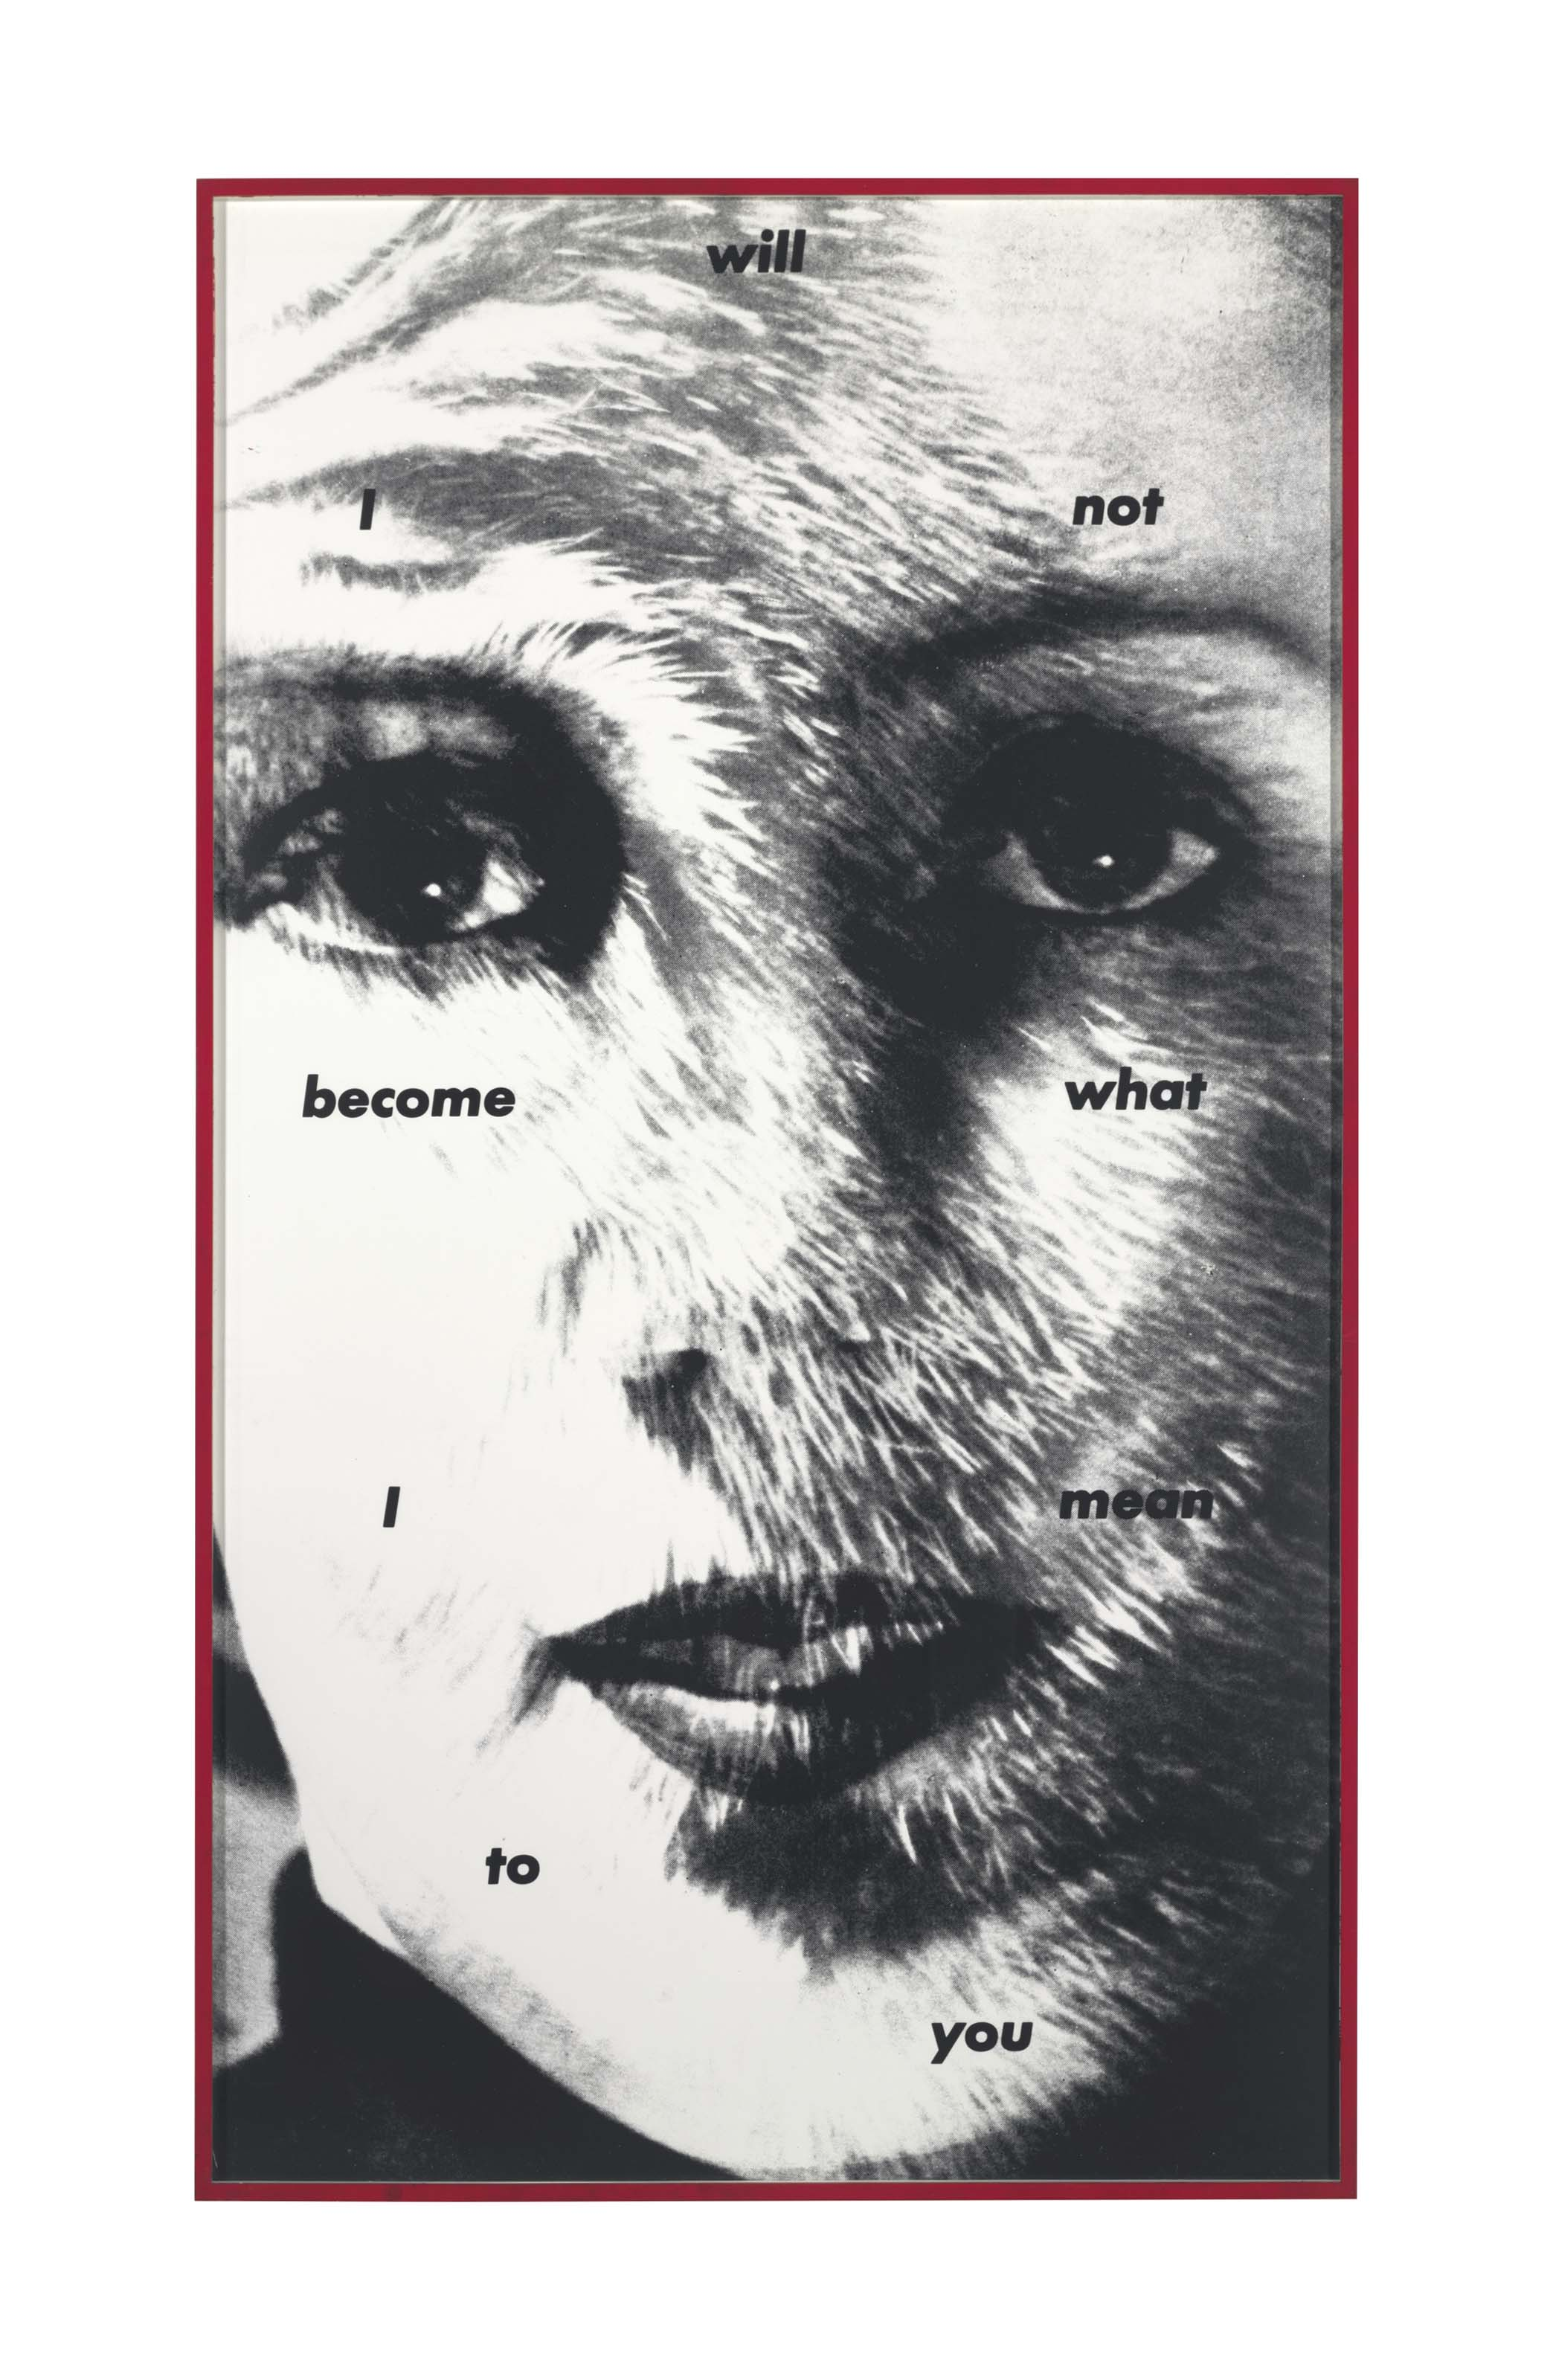 Untitled (I will not become what I mean to you)